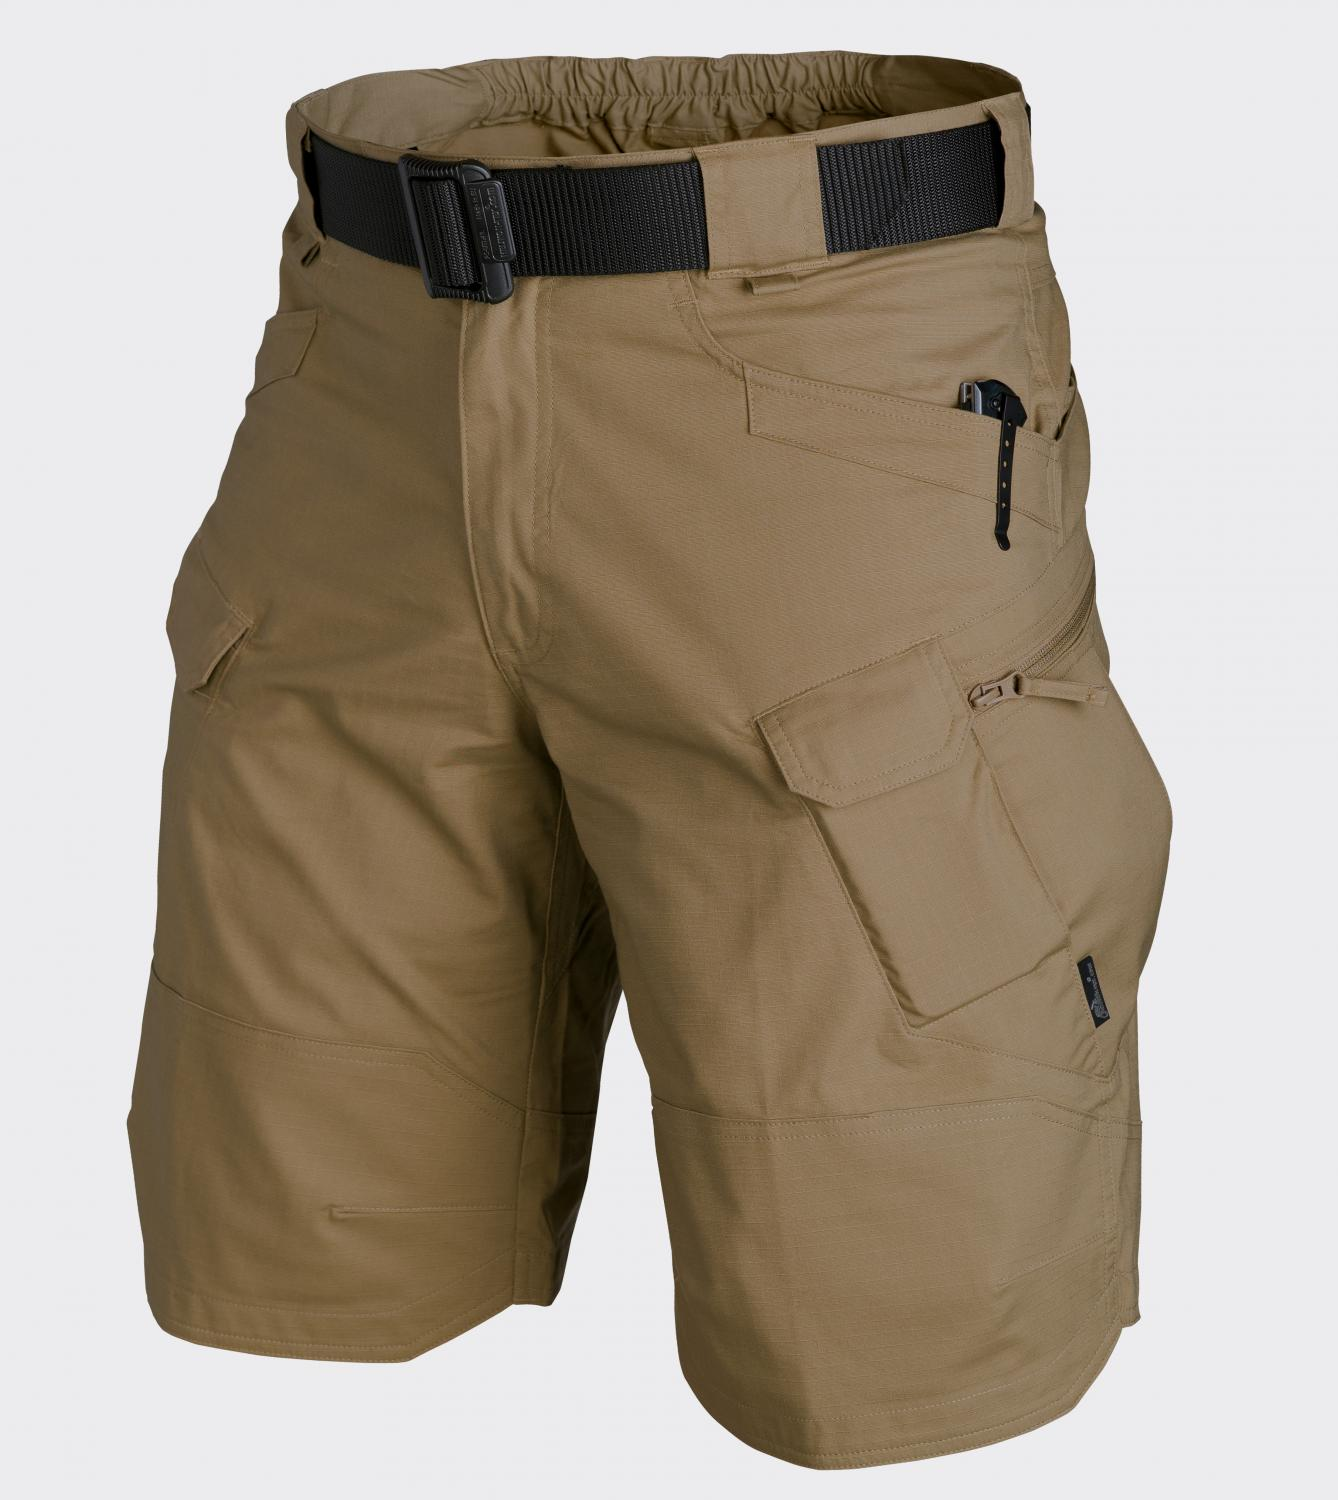 URBAN TACTICAL SHORTS® 11'' - PolyCotton Ripstop Coyote